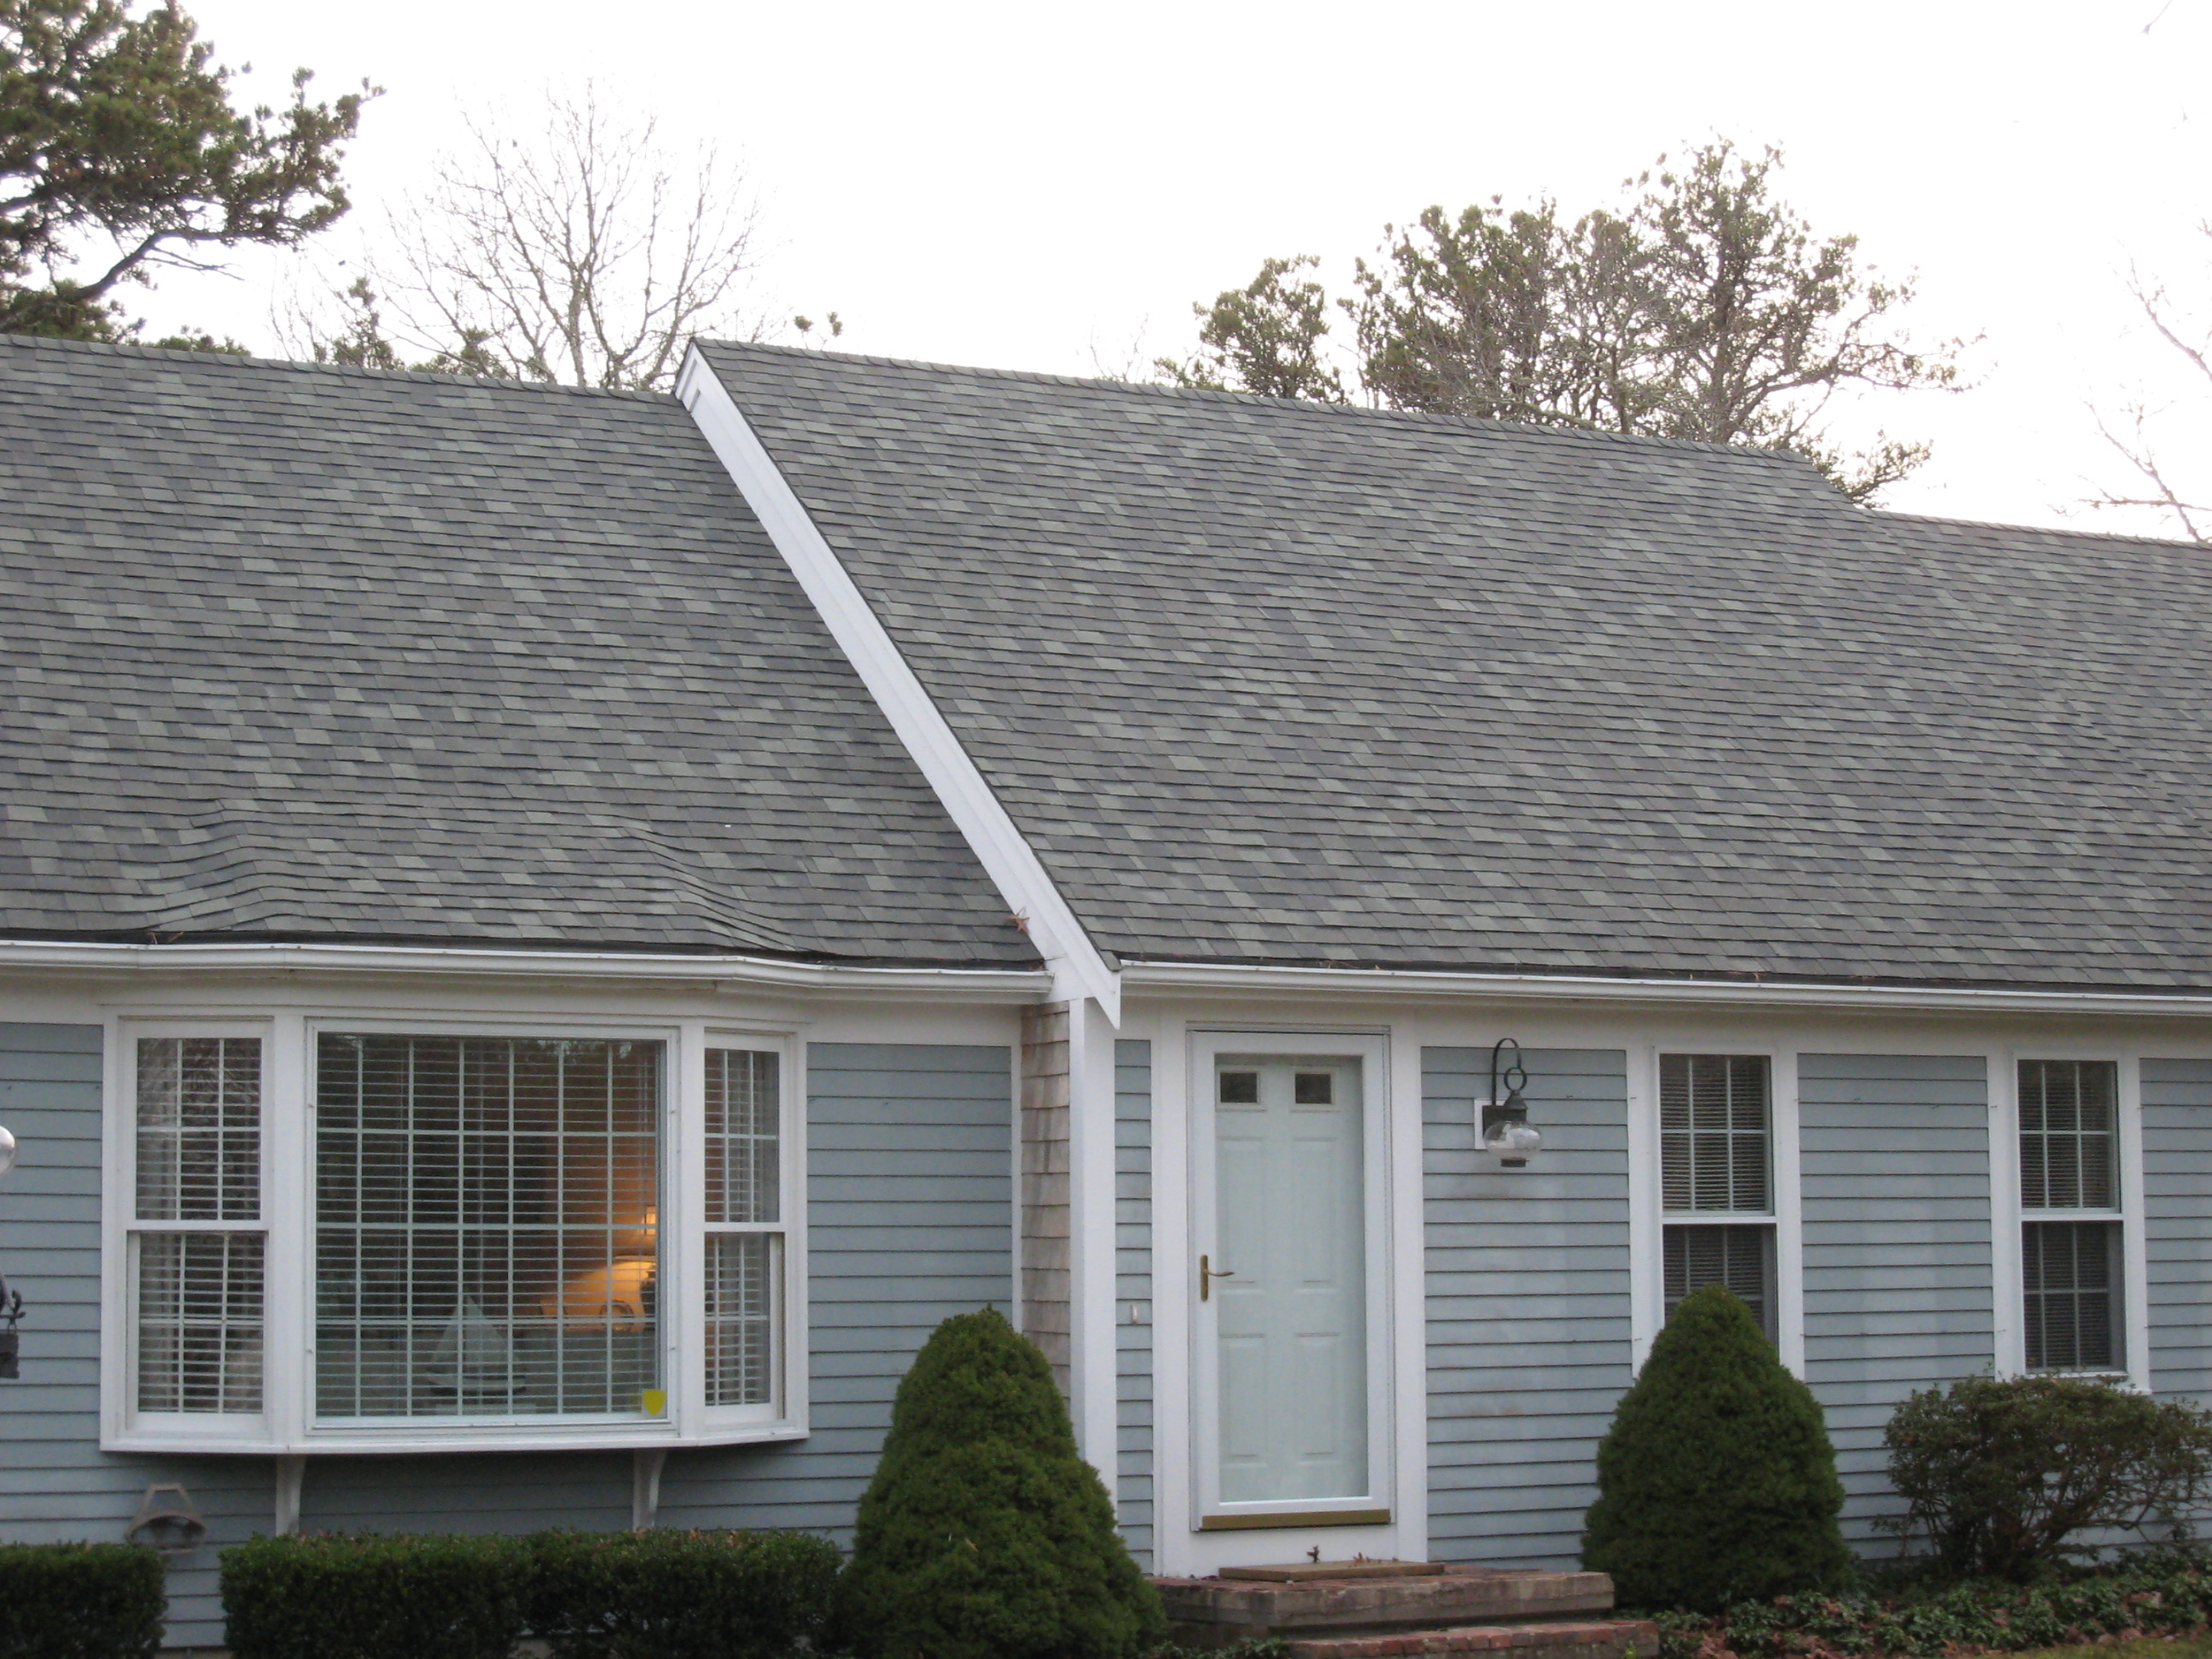 Allroofing Amp Contracting